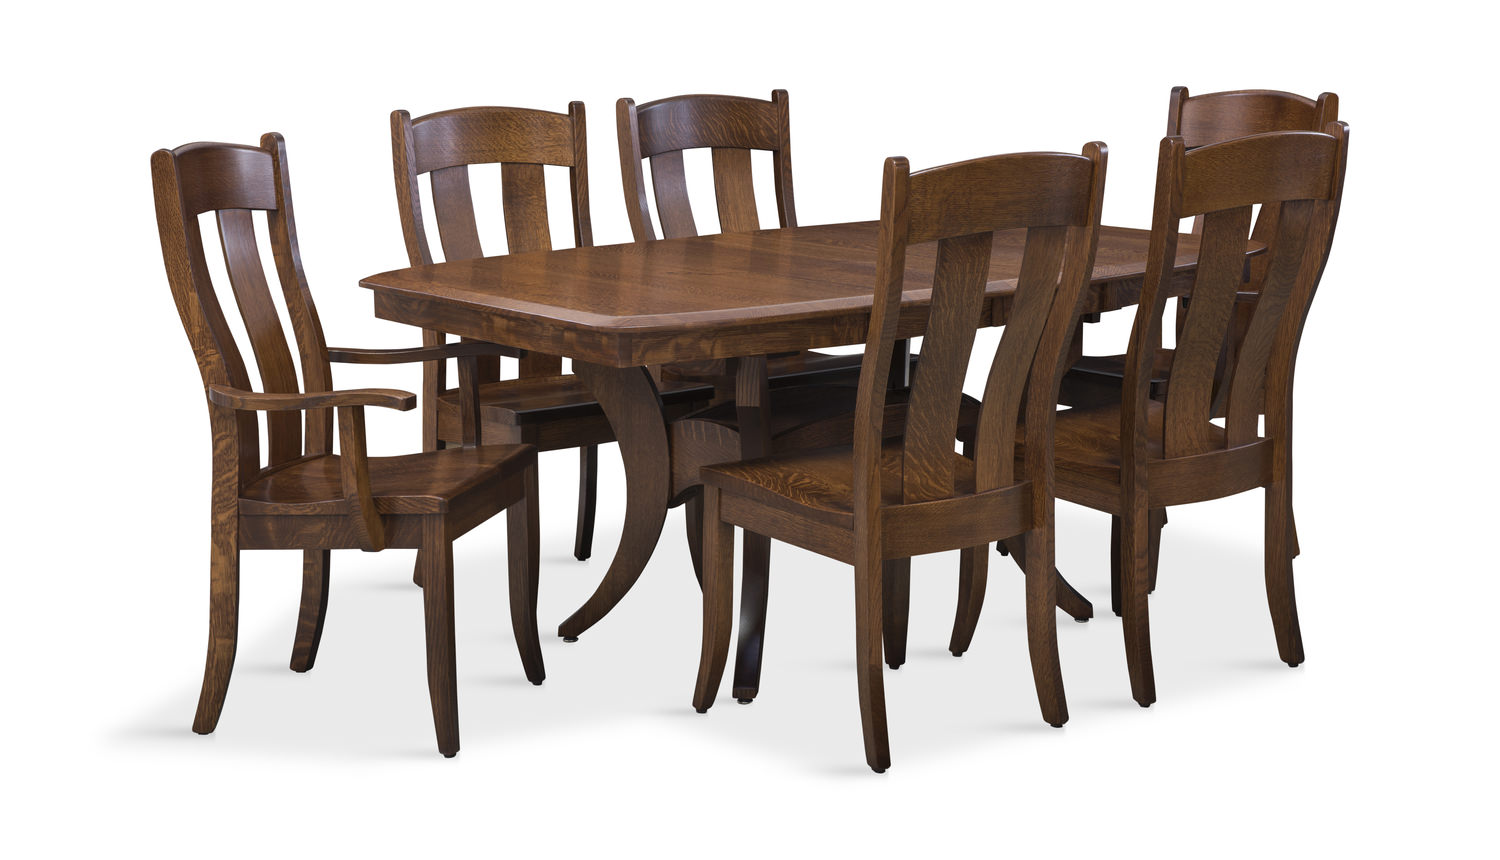 Fort Knox Trestle Table With 4 Side Chairs Rachael Ray Home Furniture With Hidden Compartments on